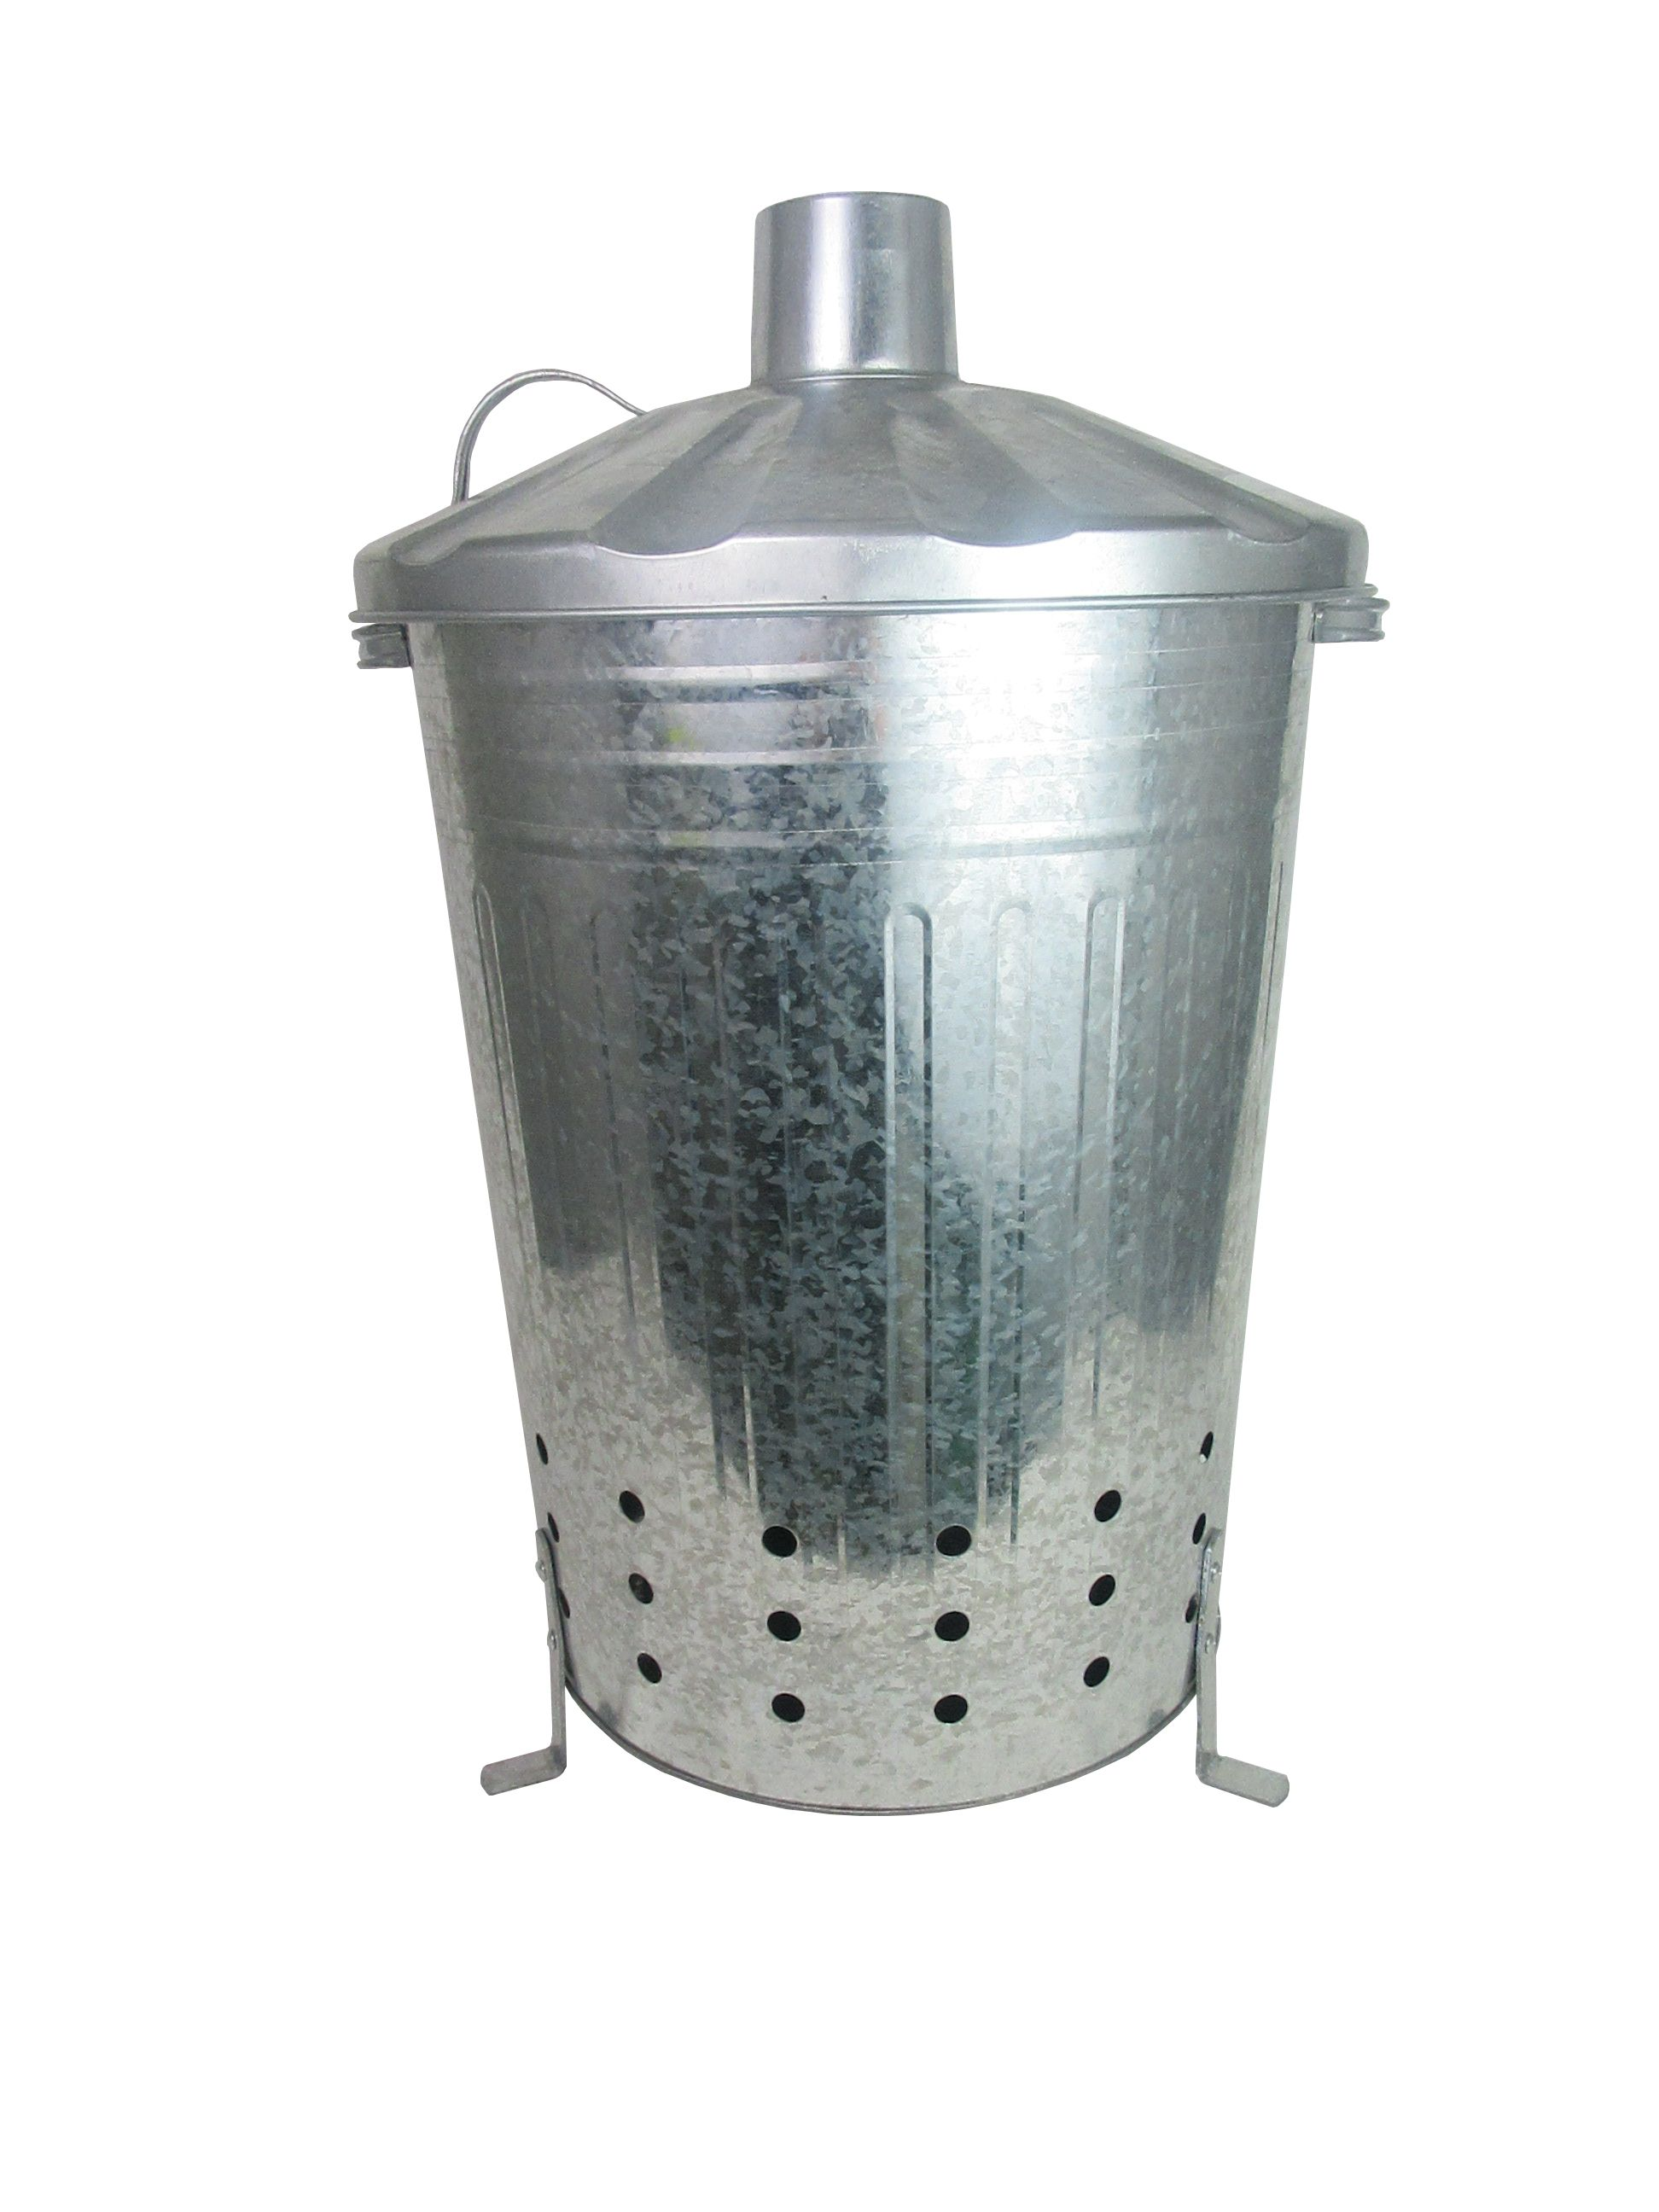 Compare prices for Apollo Galvanised Steel Garden Incinerator - 80L